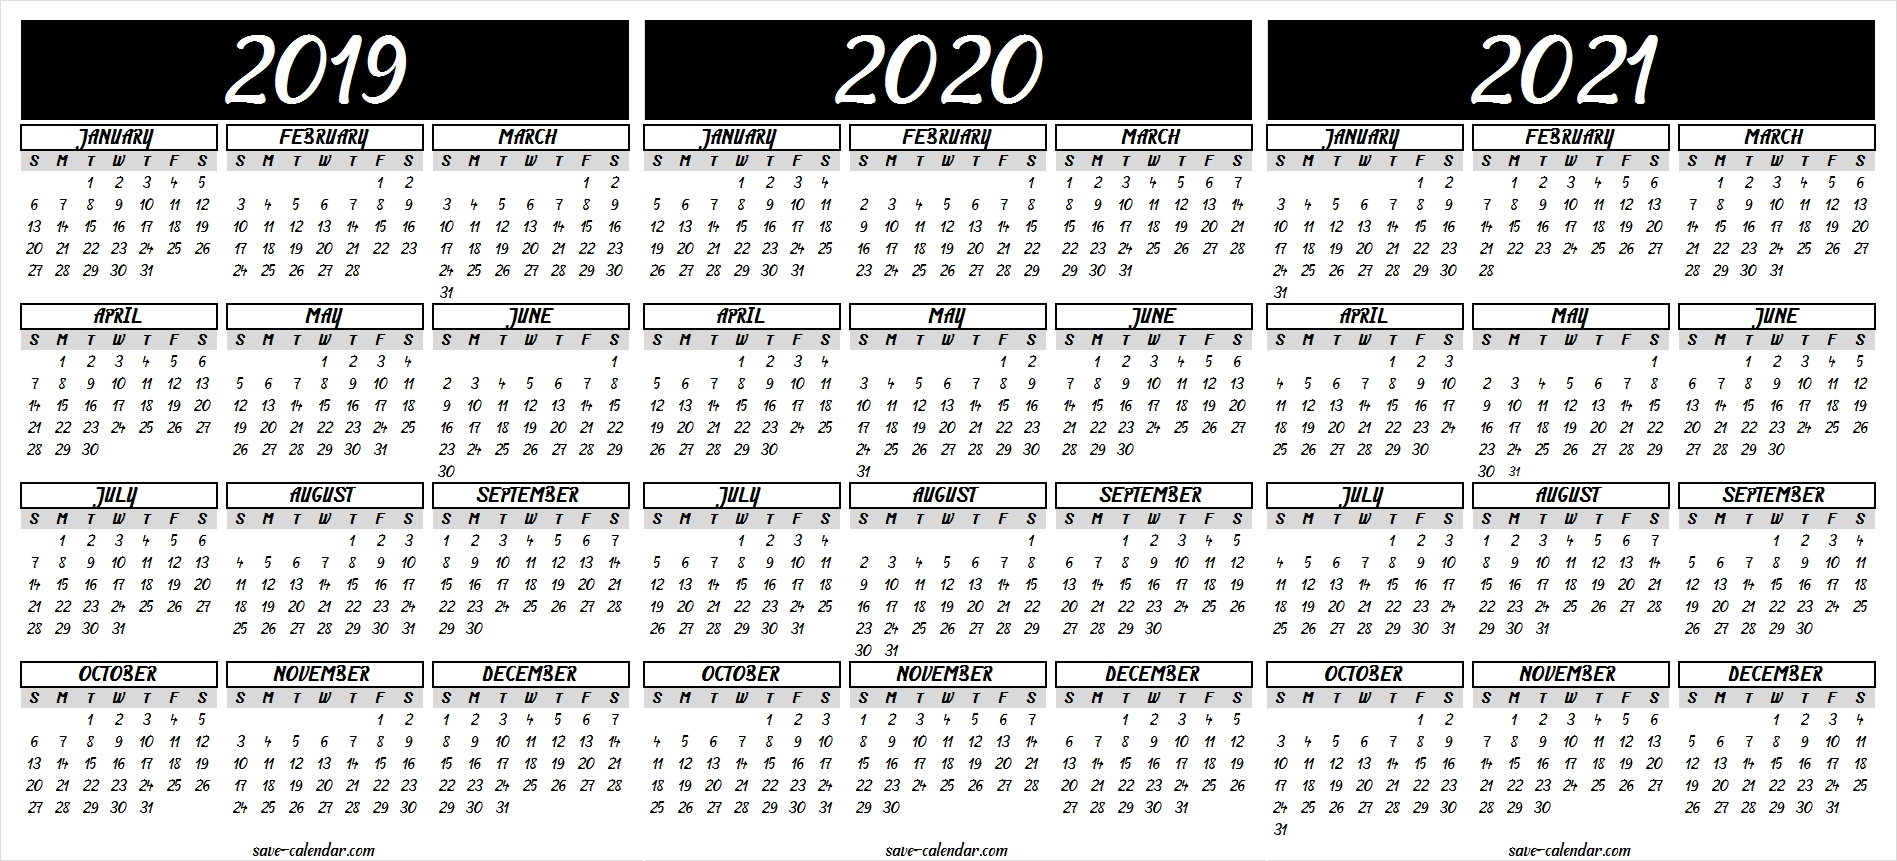 2019 2020 2021 Calendar Printable Template (With Images  Printable 12 Month 2020 2021 Calendar